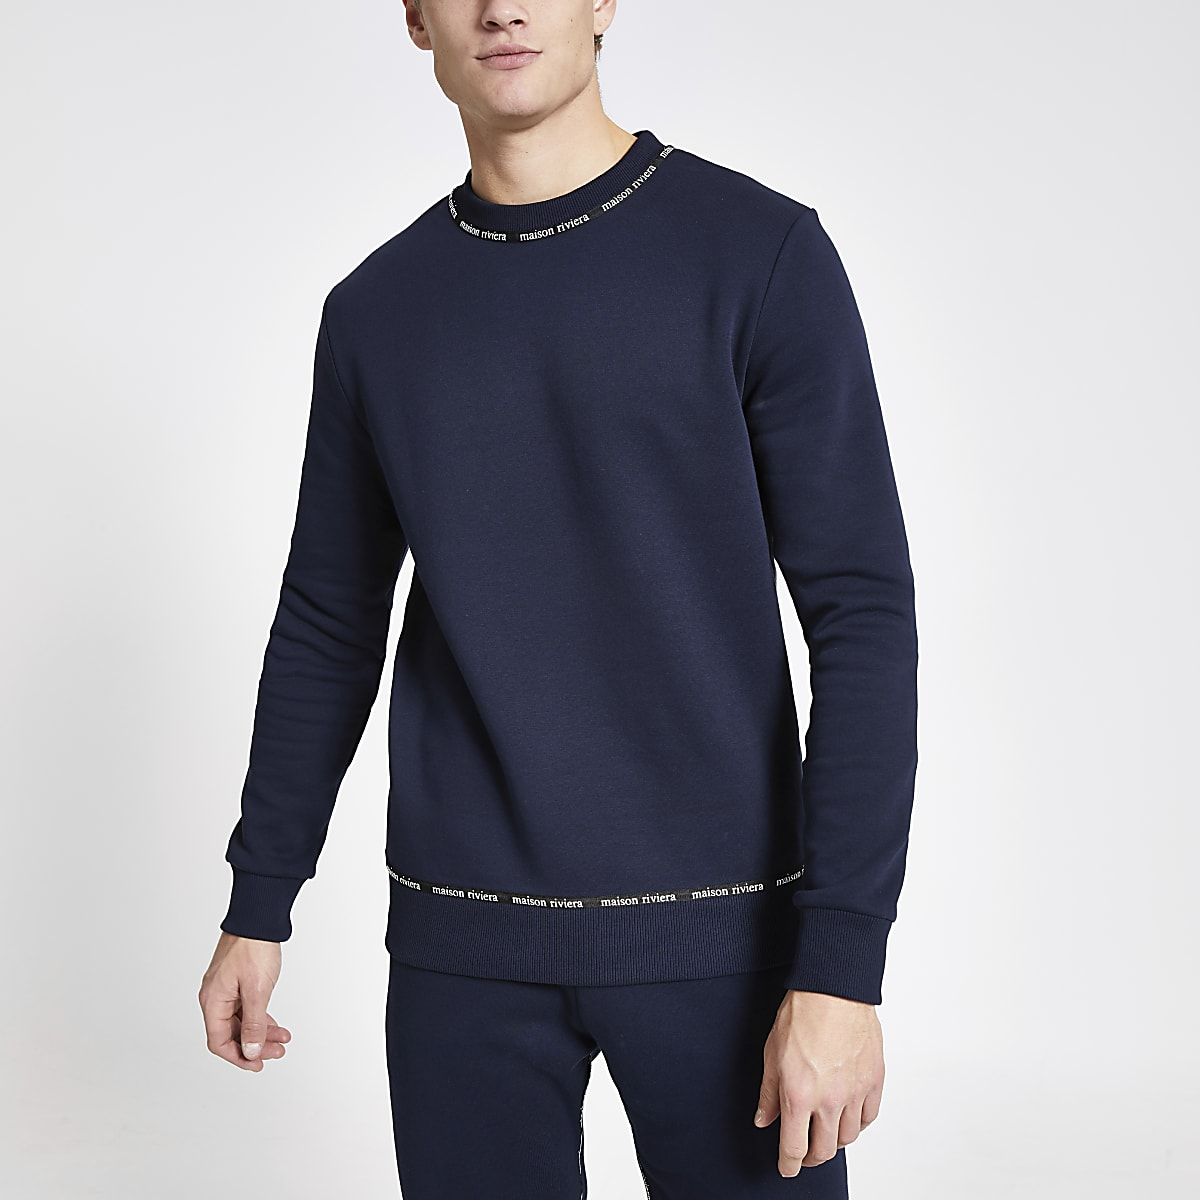 Navy Maison Riviera tape slim fit sweatshirt